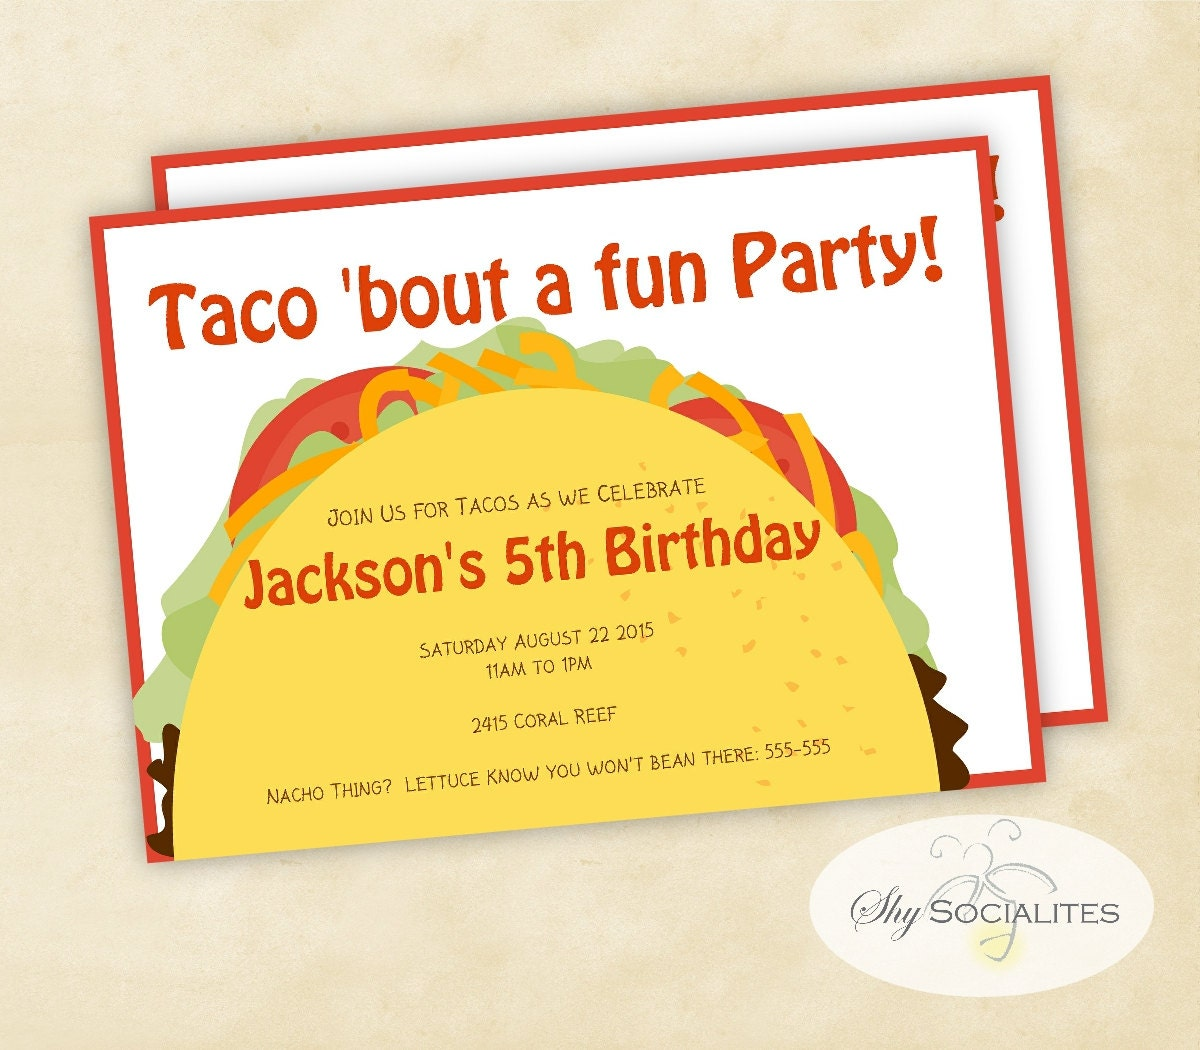 il_fullxfull.762442687_iwow taco party taco tuesday cinco de mayo fiesta taco bar,Taco Party Invitations